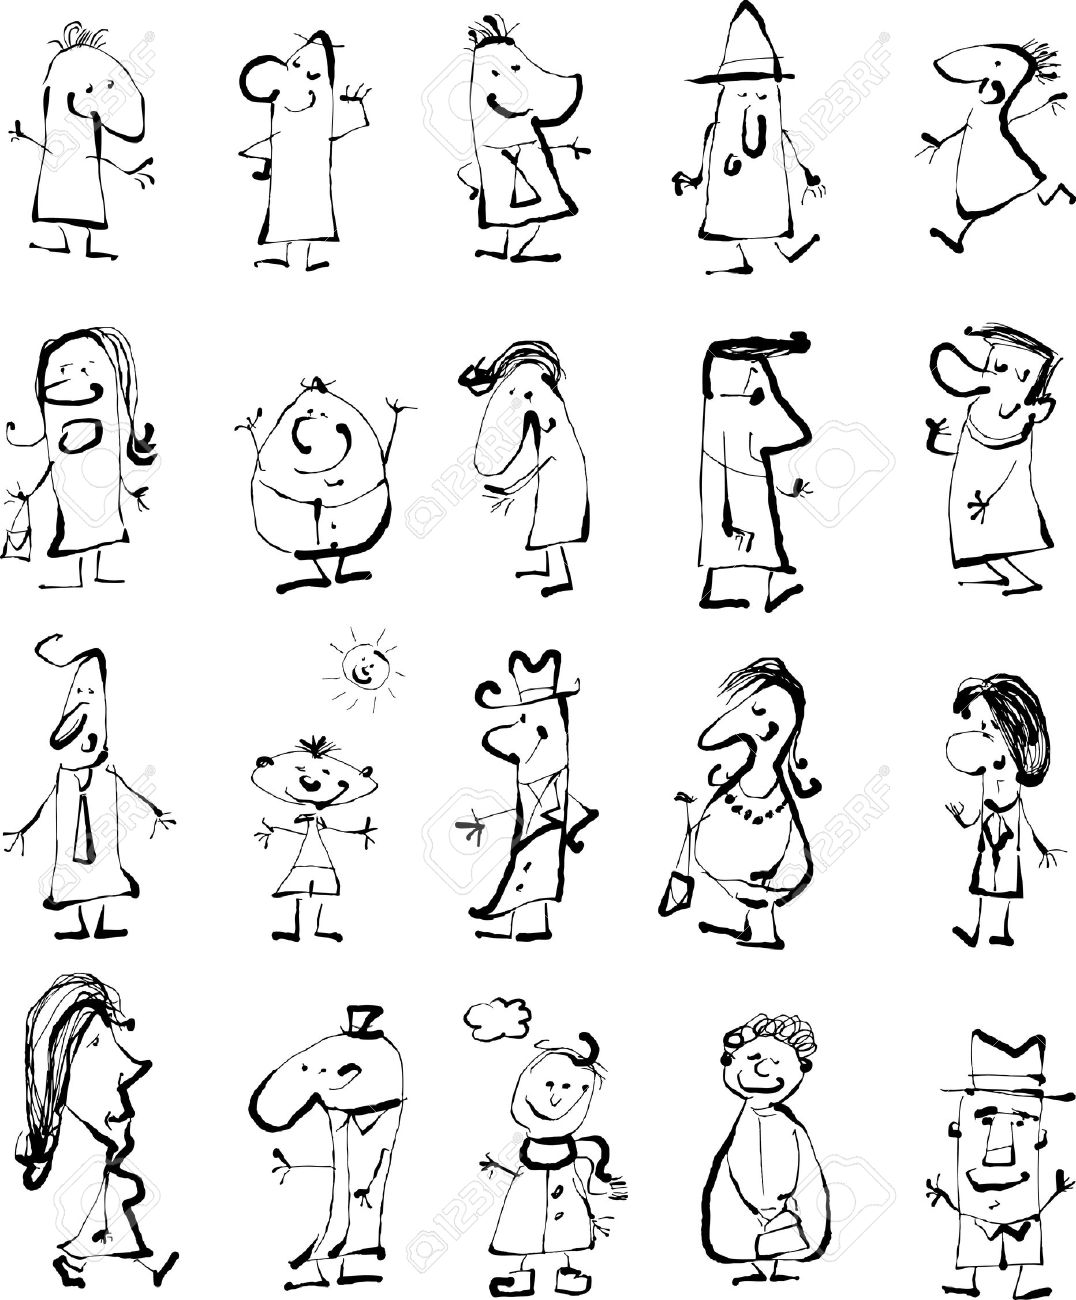 Cartoon Background Illustration of Happy Black and White Doodle People Sketch Set Stock Vector - 15555272